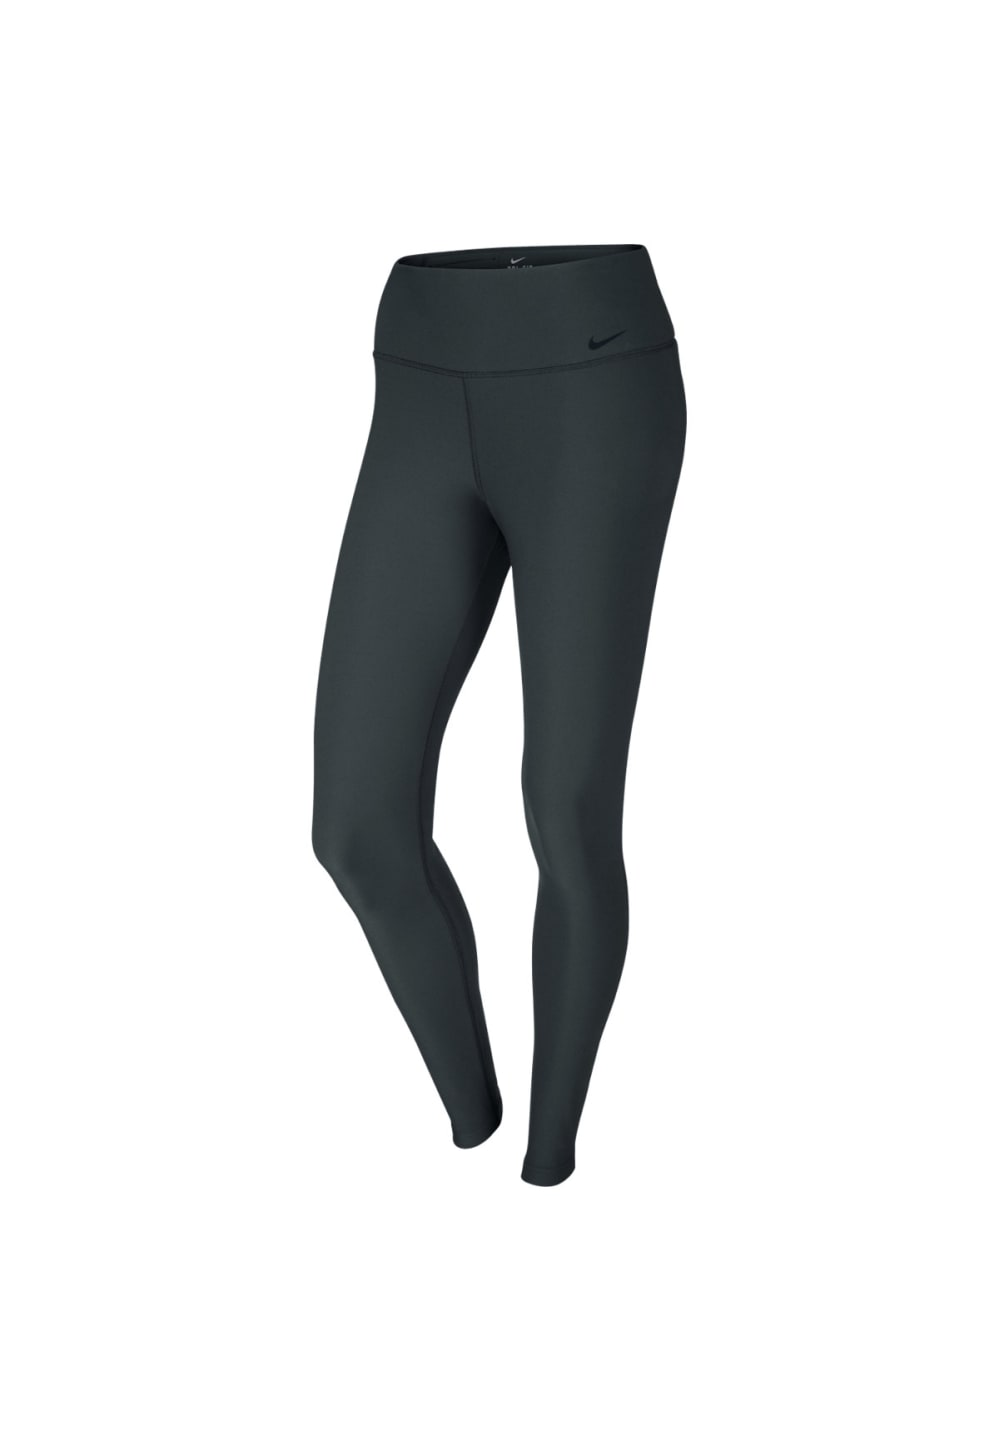 85e20532 Home · Shop · Nike Power Legend Training Tight - Running trousers for Women  - Grey. Back to Overview. 1; 2. Previous